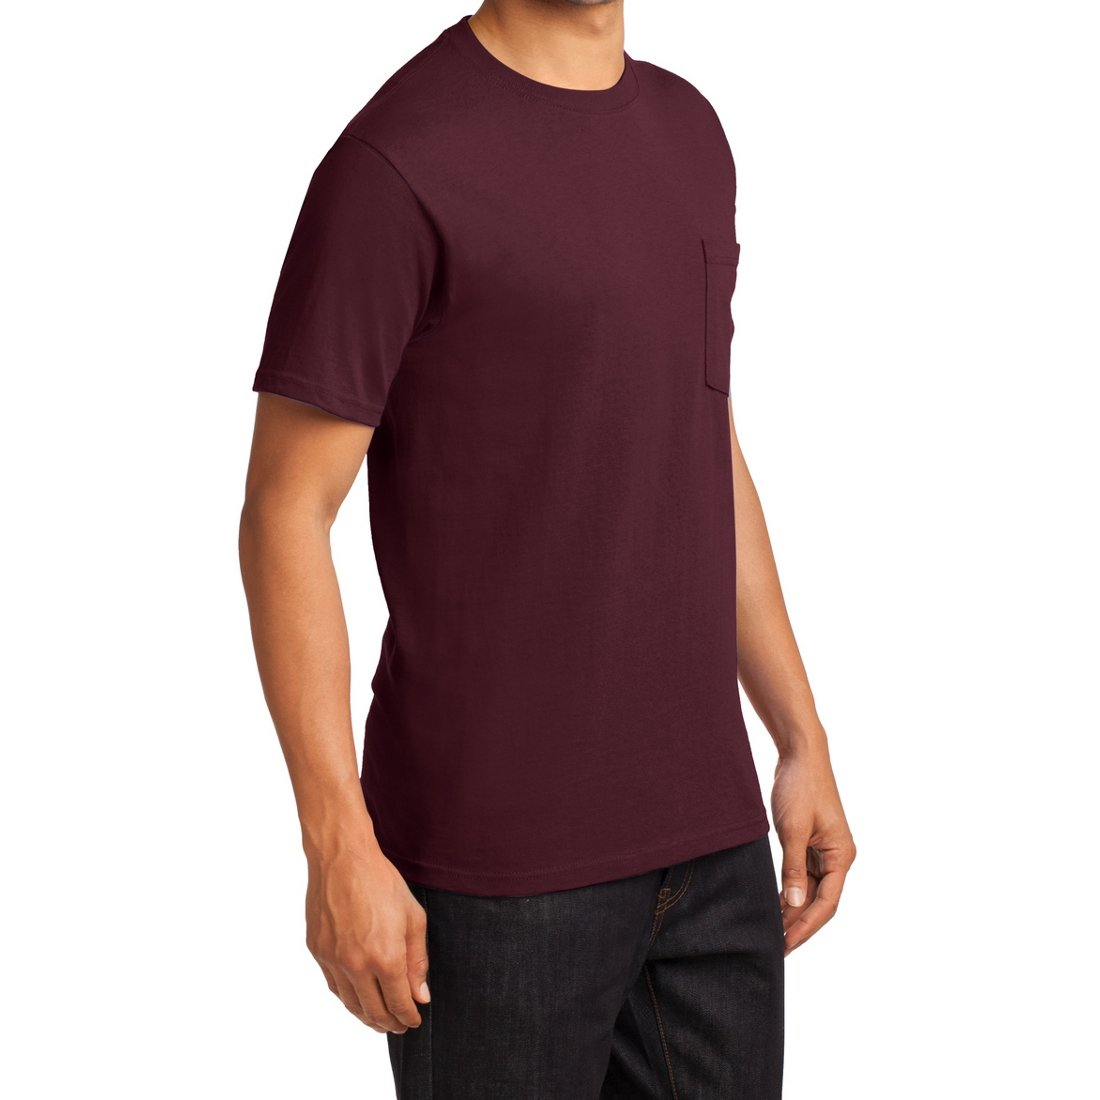 Men's Essential T Shirt with Pocket Athletic Maroon